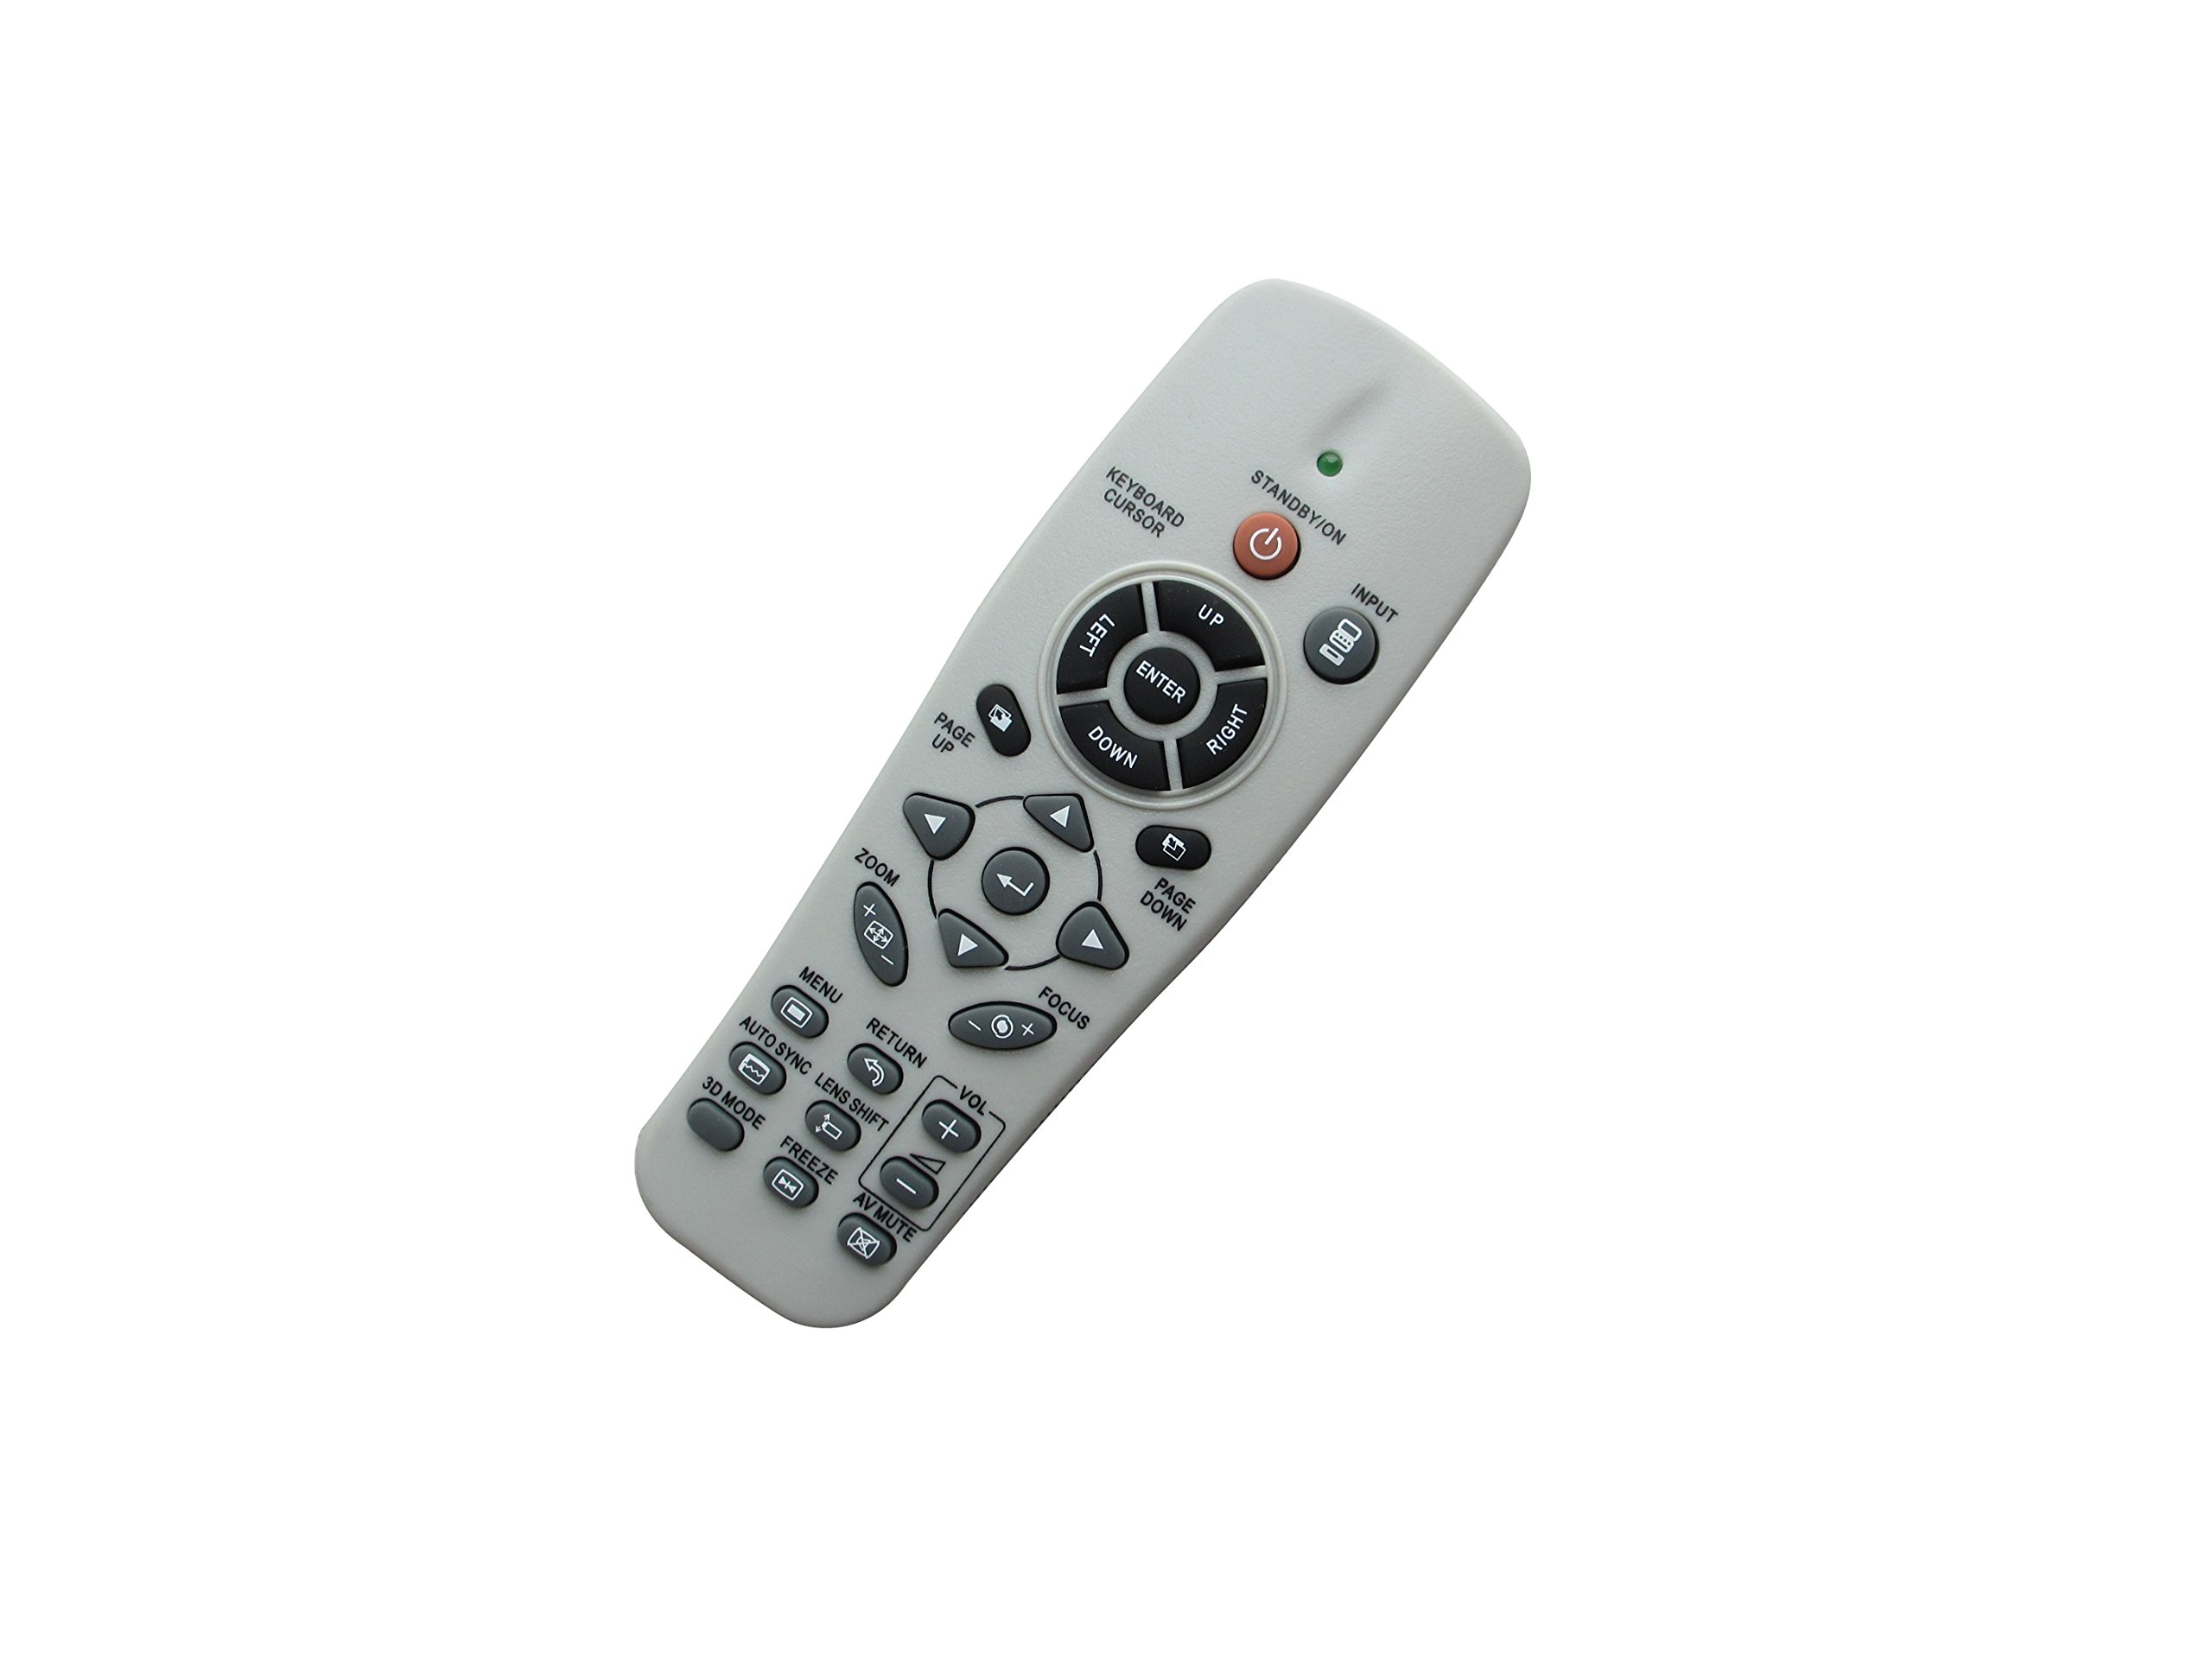 Universal DLP Projector Replacement Remote Control For Vivitek D945VX D940DX D940VX D795ST D-930TX D735MX D930TX D326WX D740MX D326MX D-832MX D732MX D-835 D-837 D-851 D735VX D837 D871ST D516 D552 D555 by HCDZ